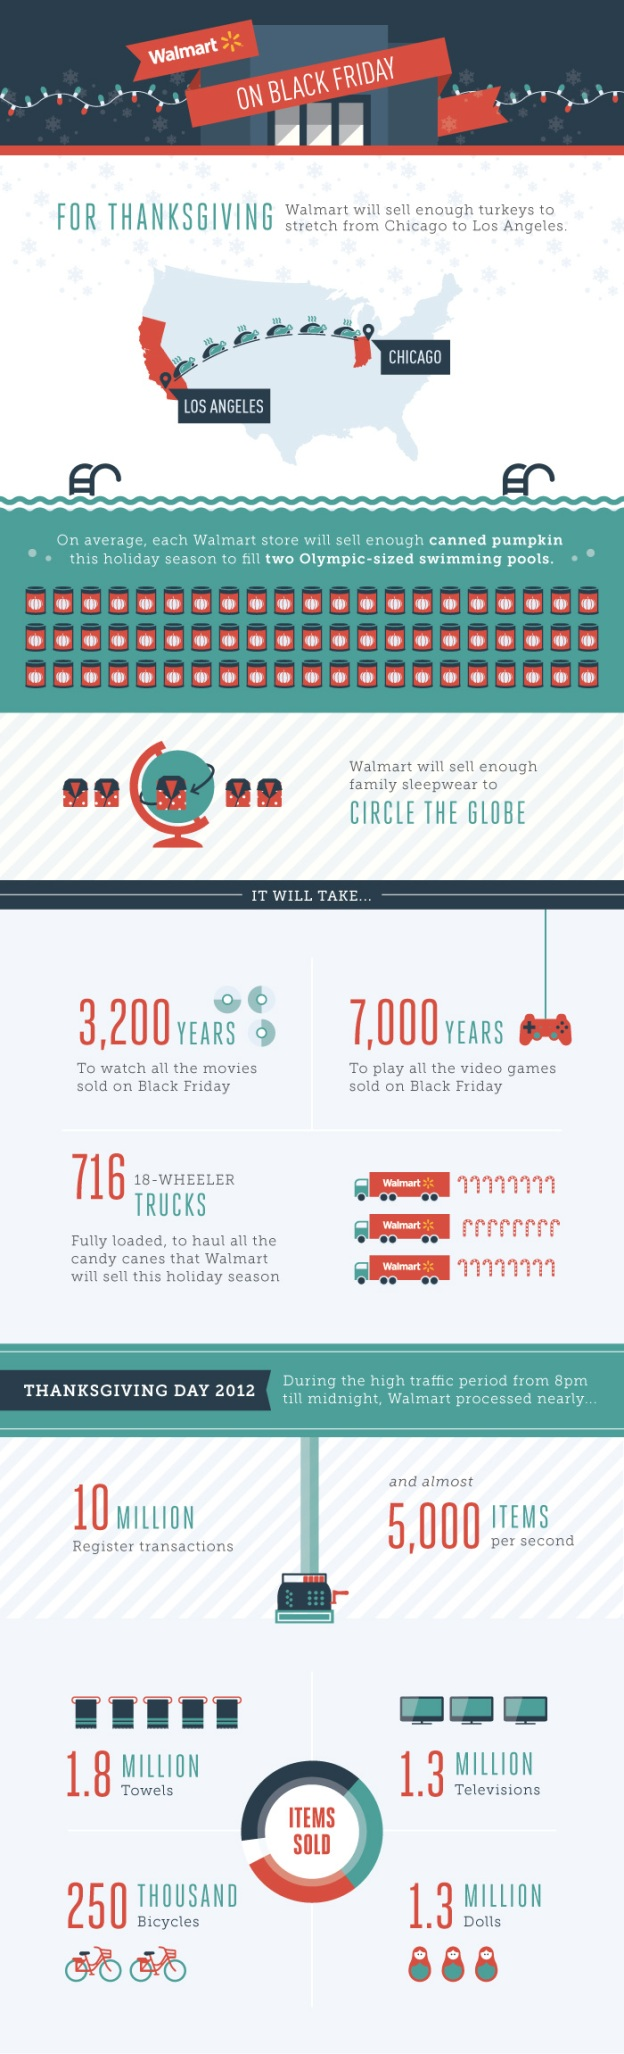 11.25-13_BlackFriday_infographic